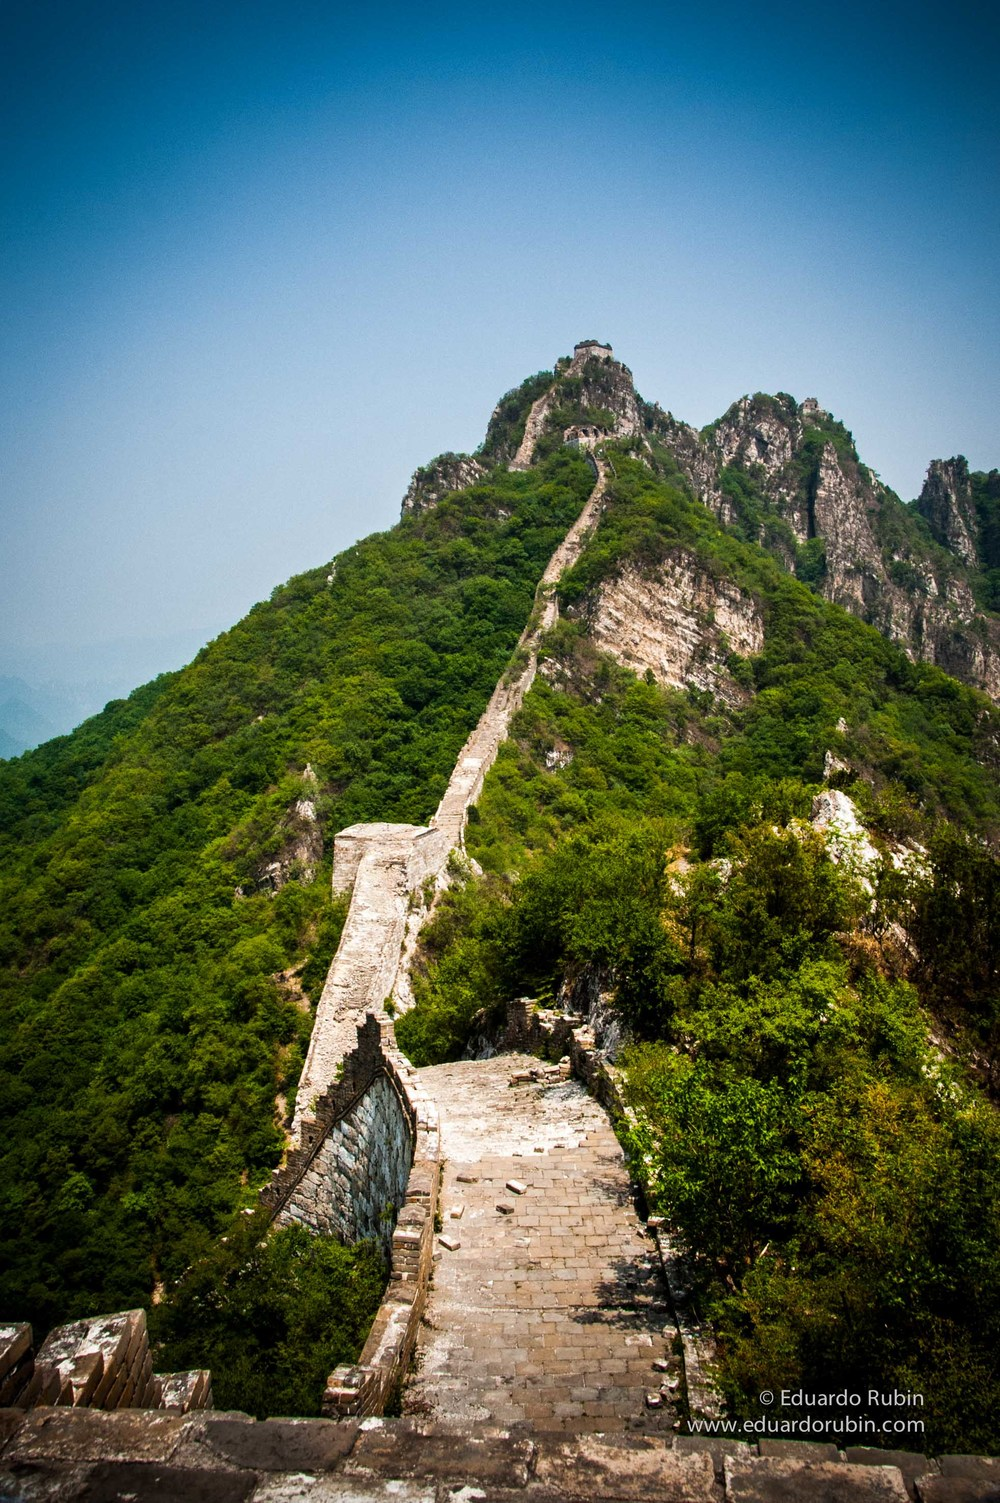 GreatWall-13.jpg